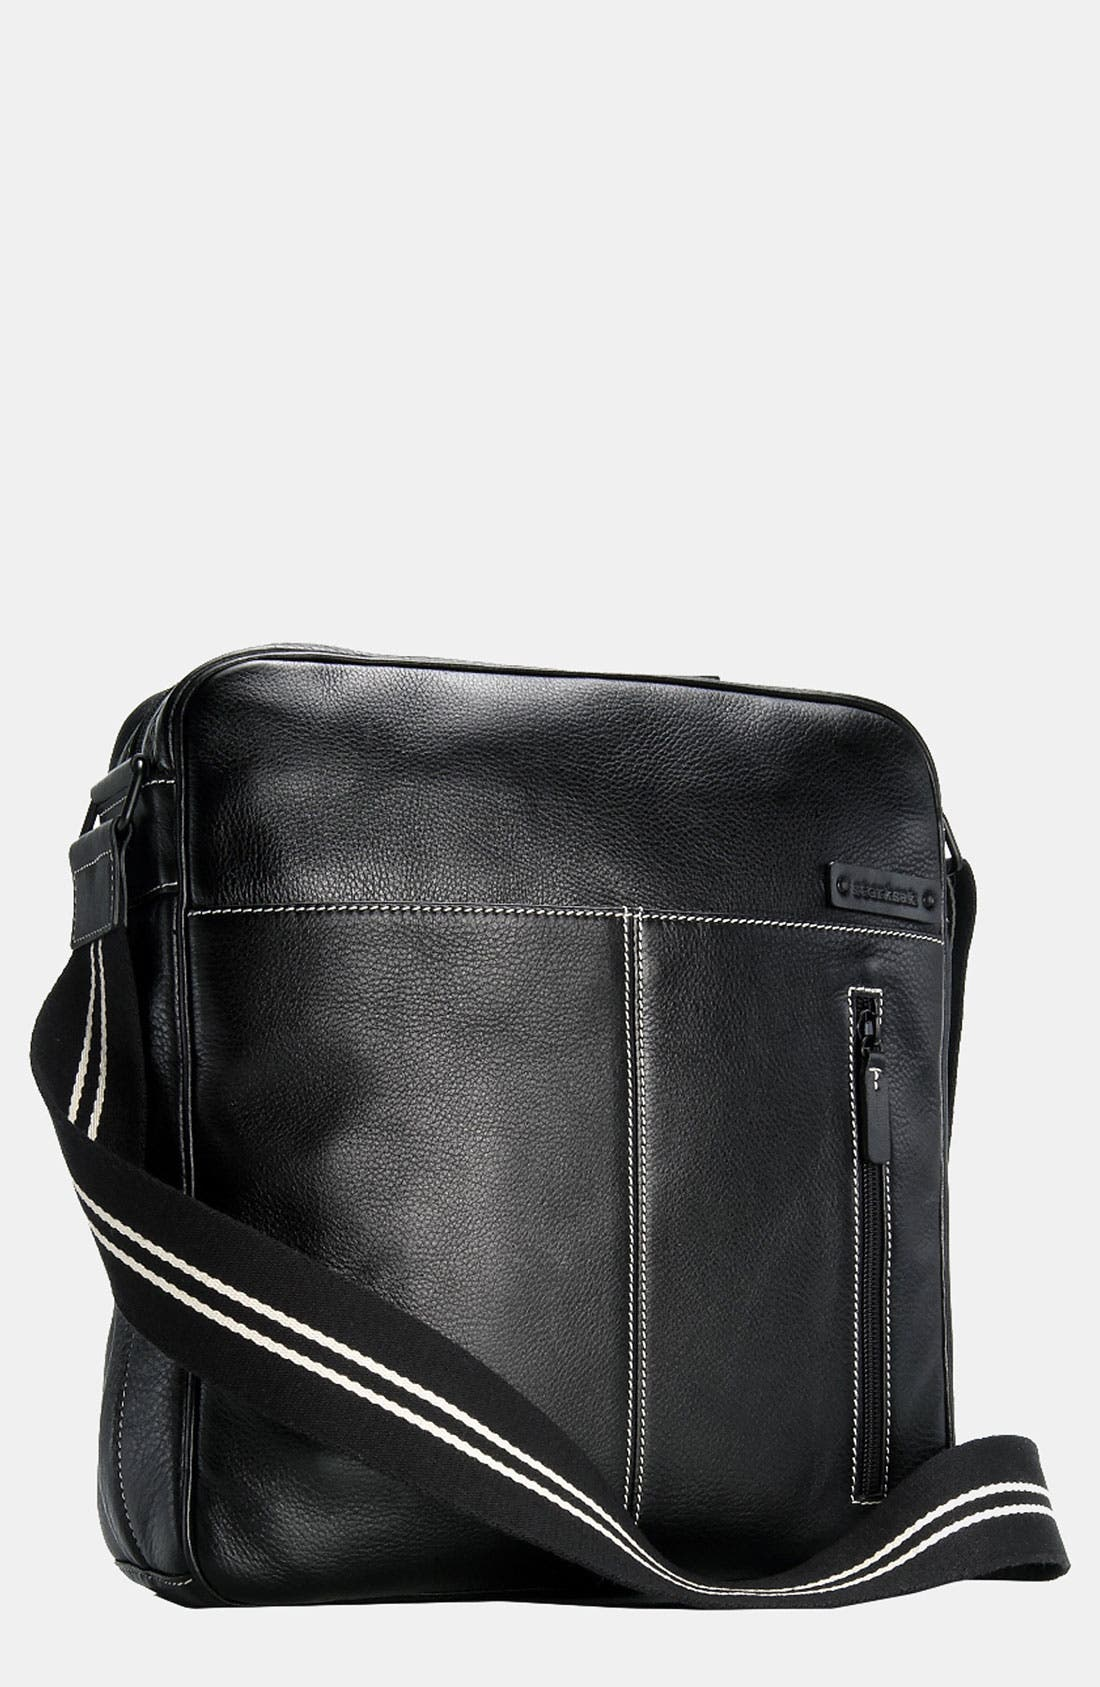 Main Image - Storksak 'Jamie' Leather Diaper Bag